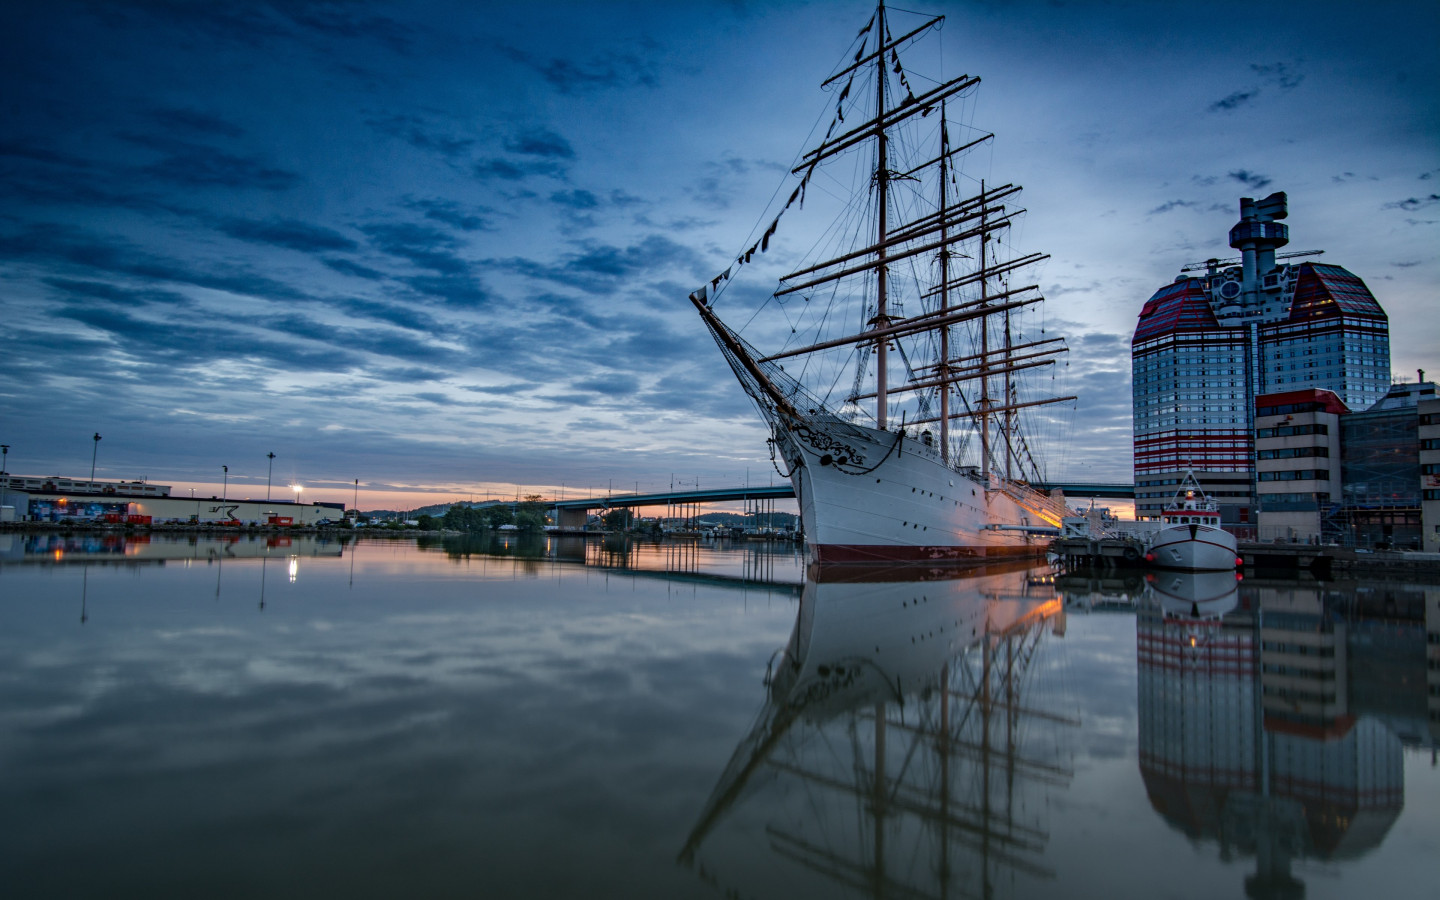 Historic wooden sailing ship in Gothenburg Harbour wallpaper 1440x900